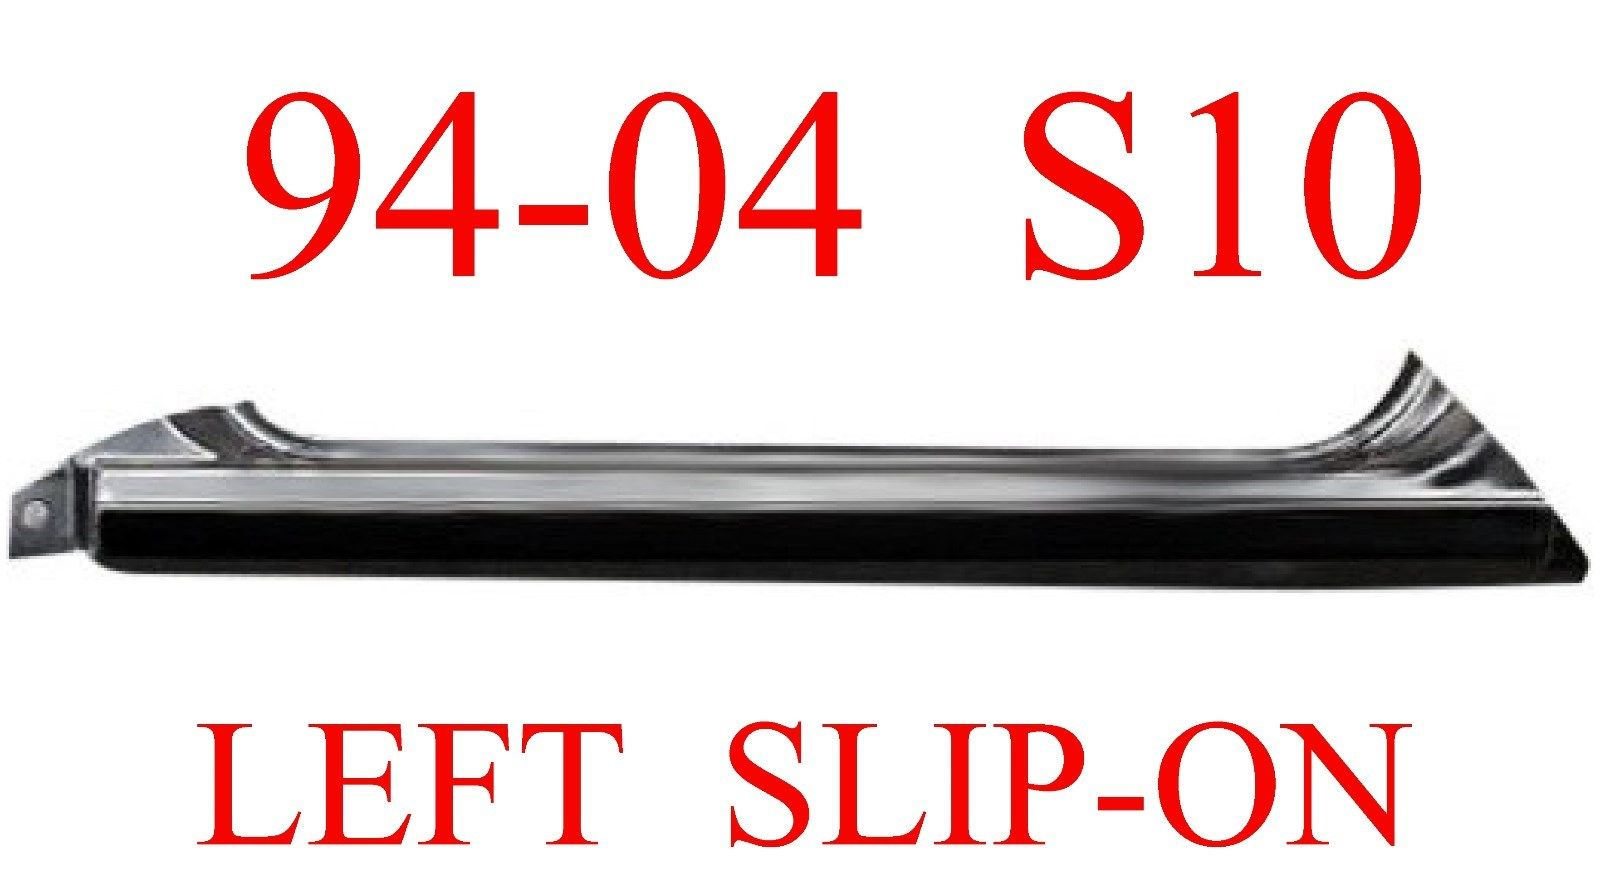 94-04 Chevy S10 Left Slip-On Rocker Panel